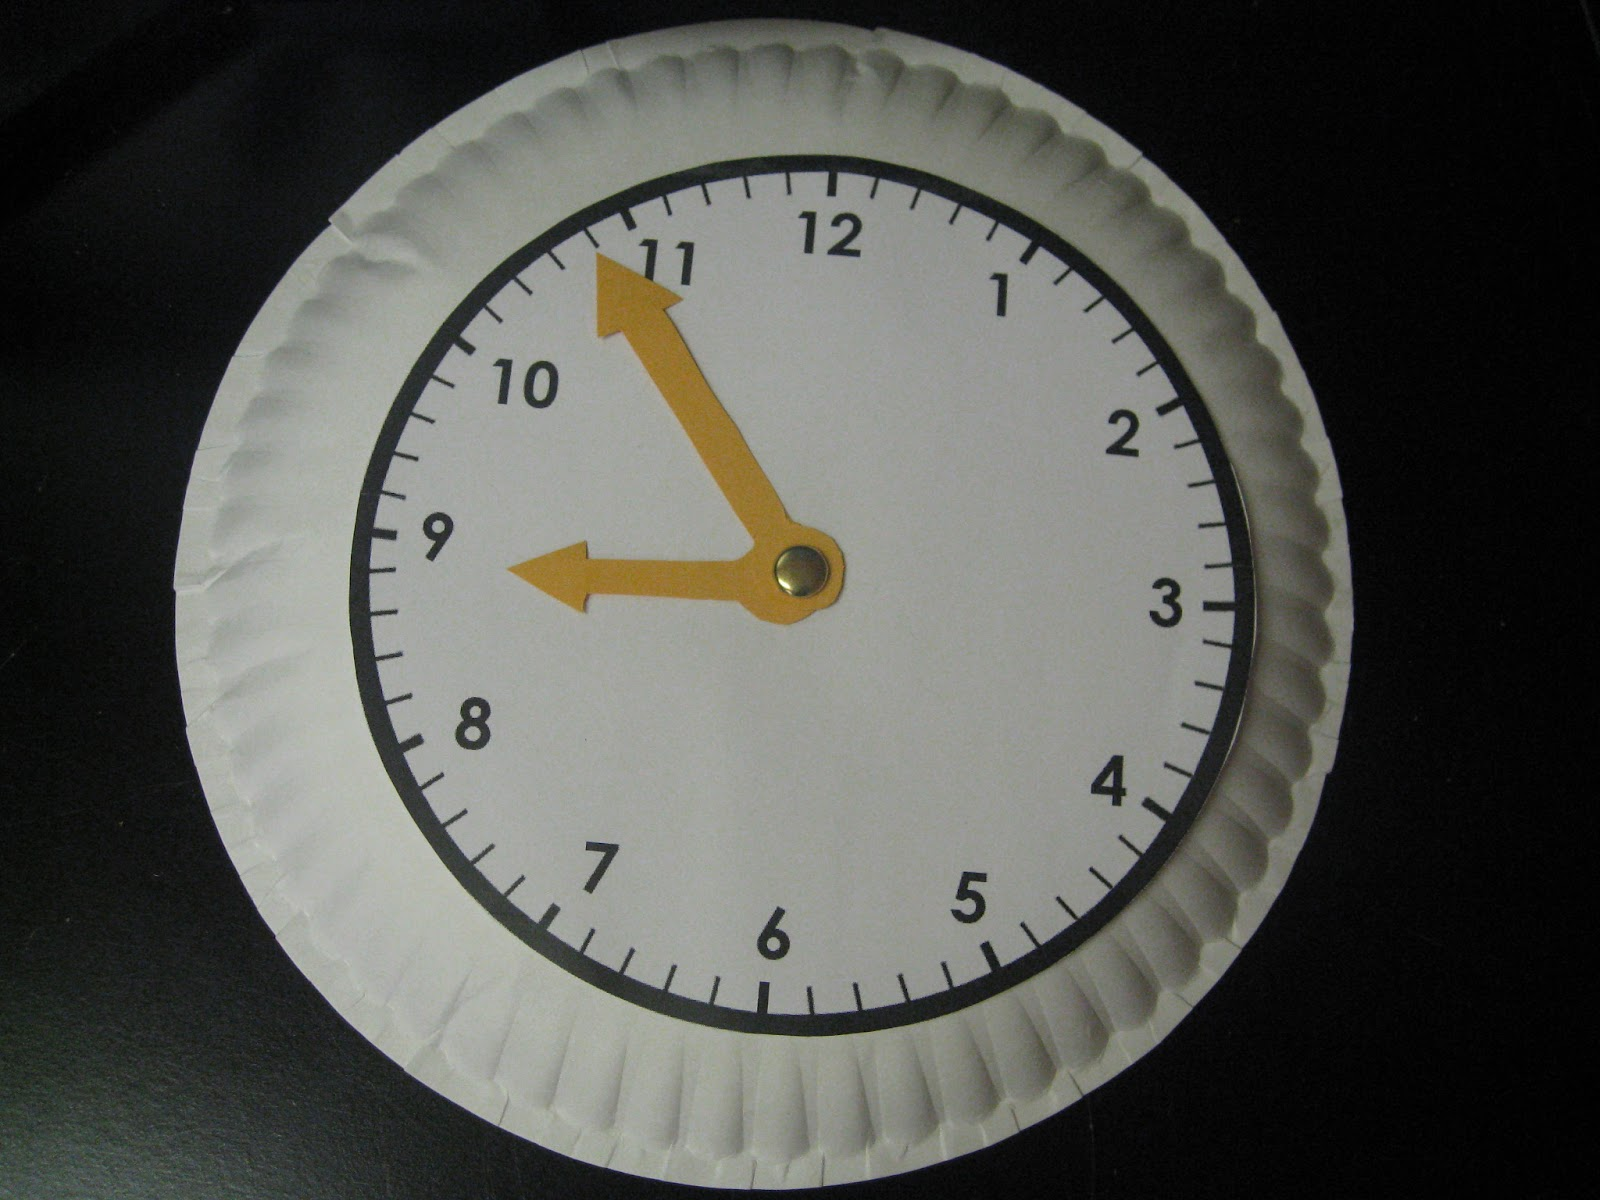 ... clock I created using a free clock face printable from freeology.com